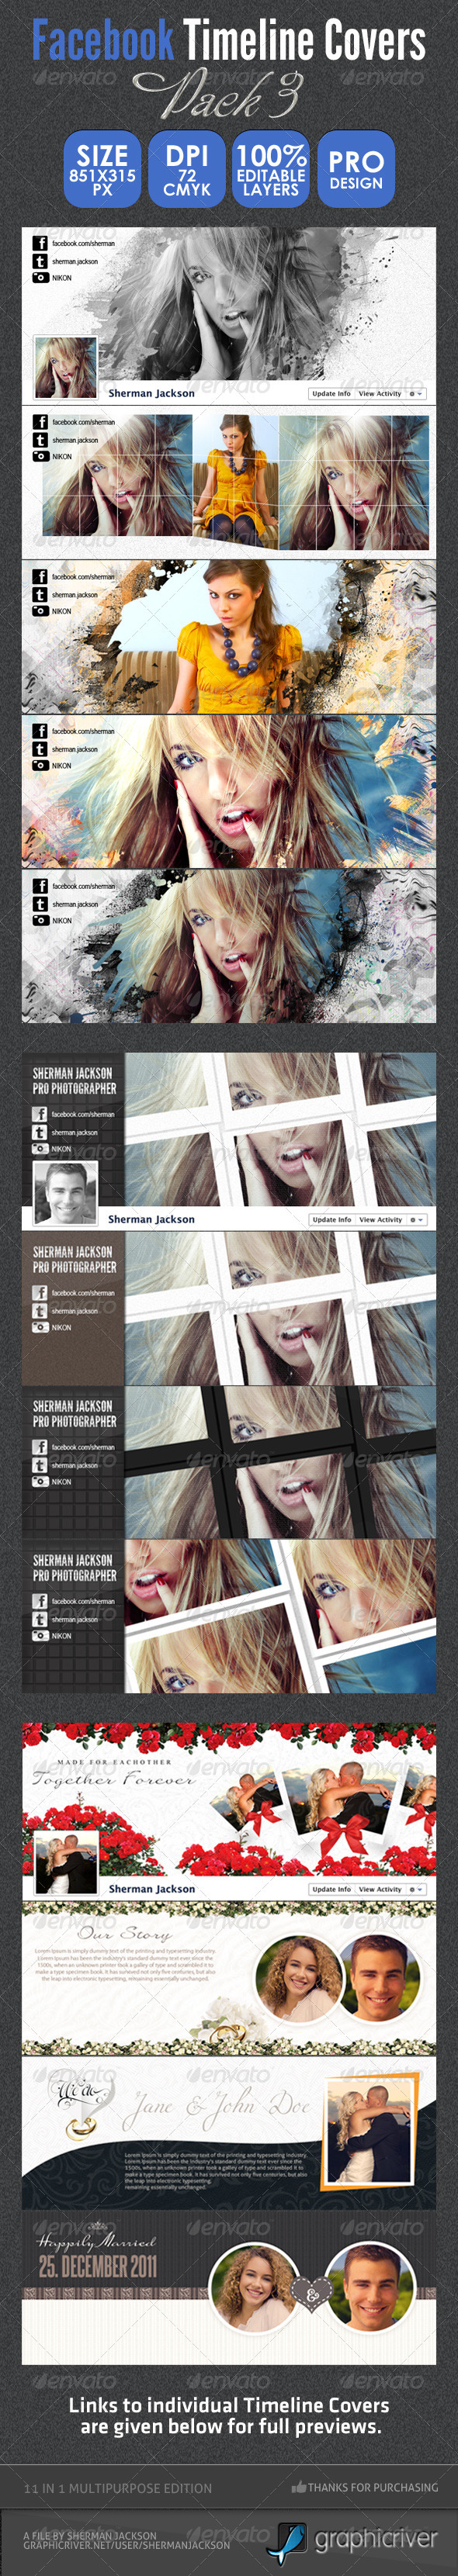 Facebook Timeline Bundle Pack 3